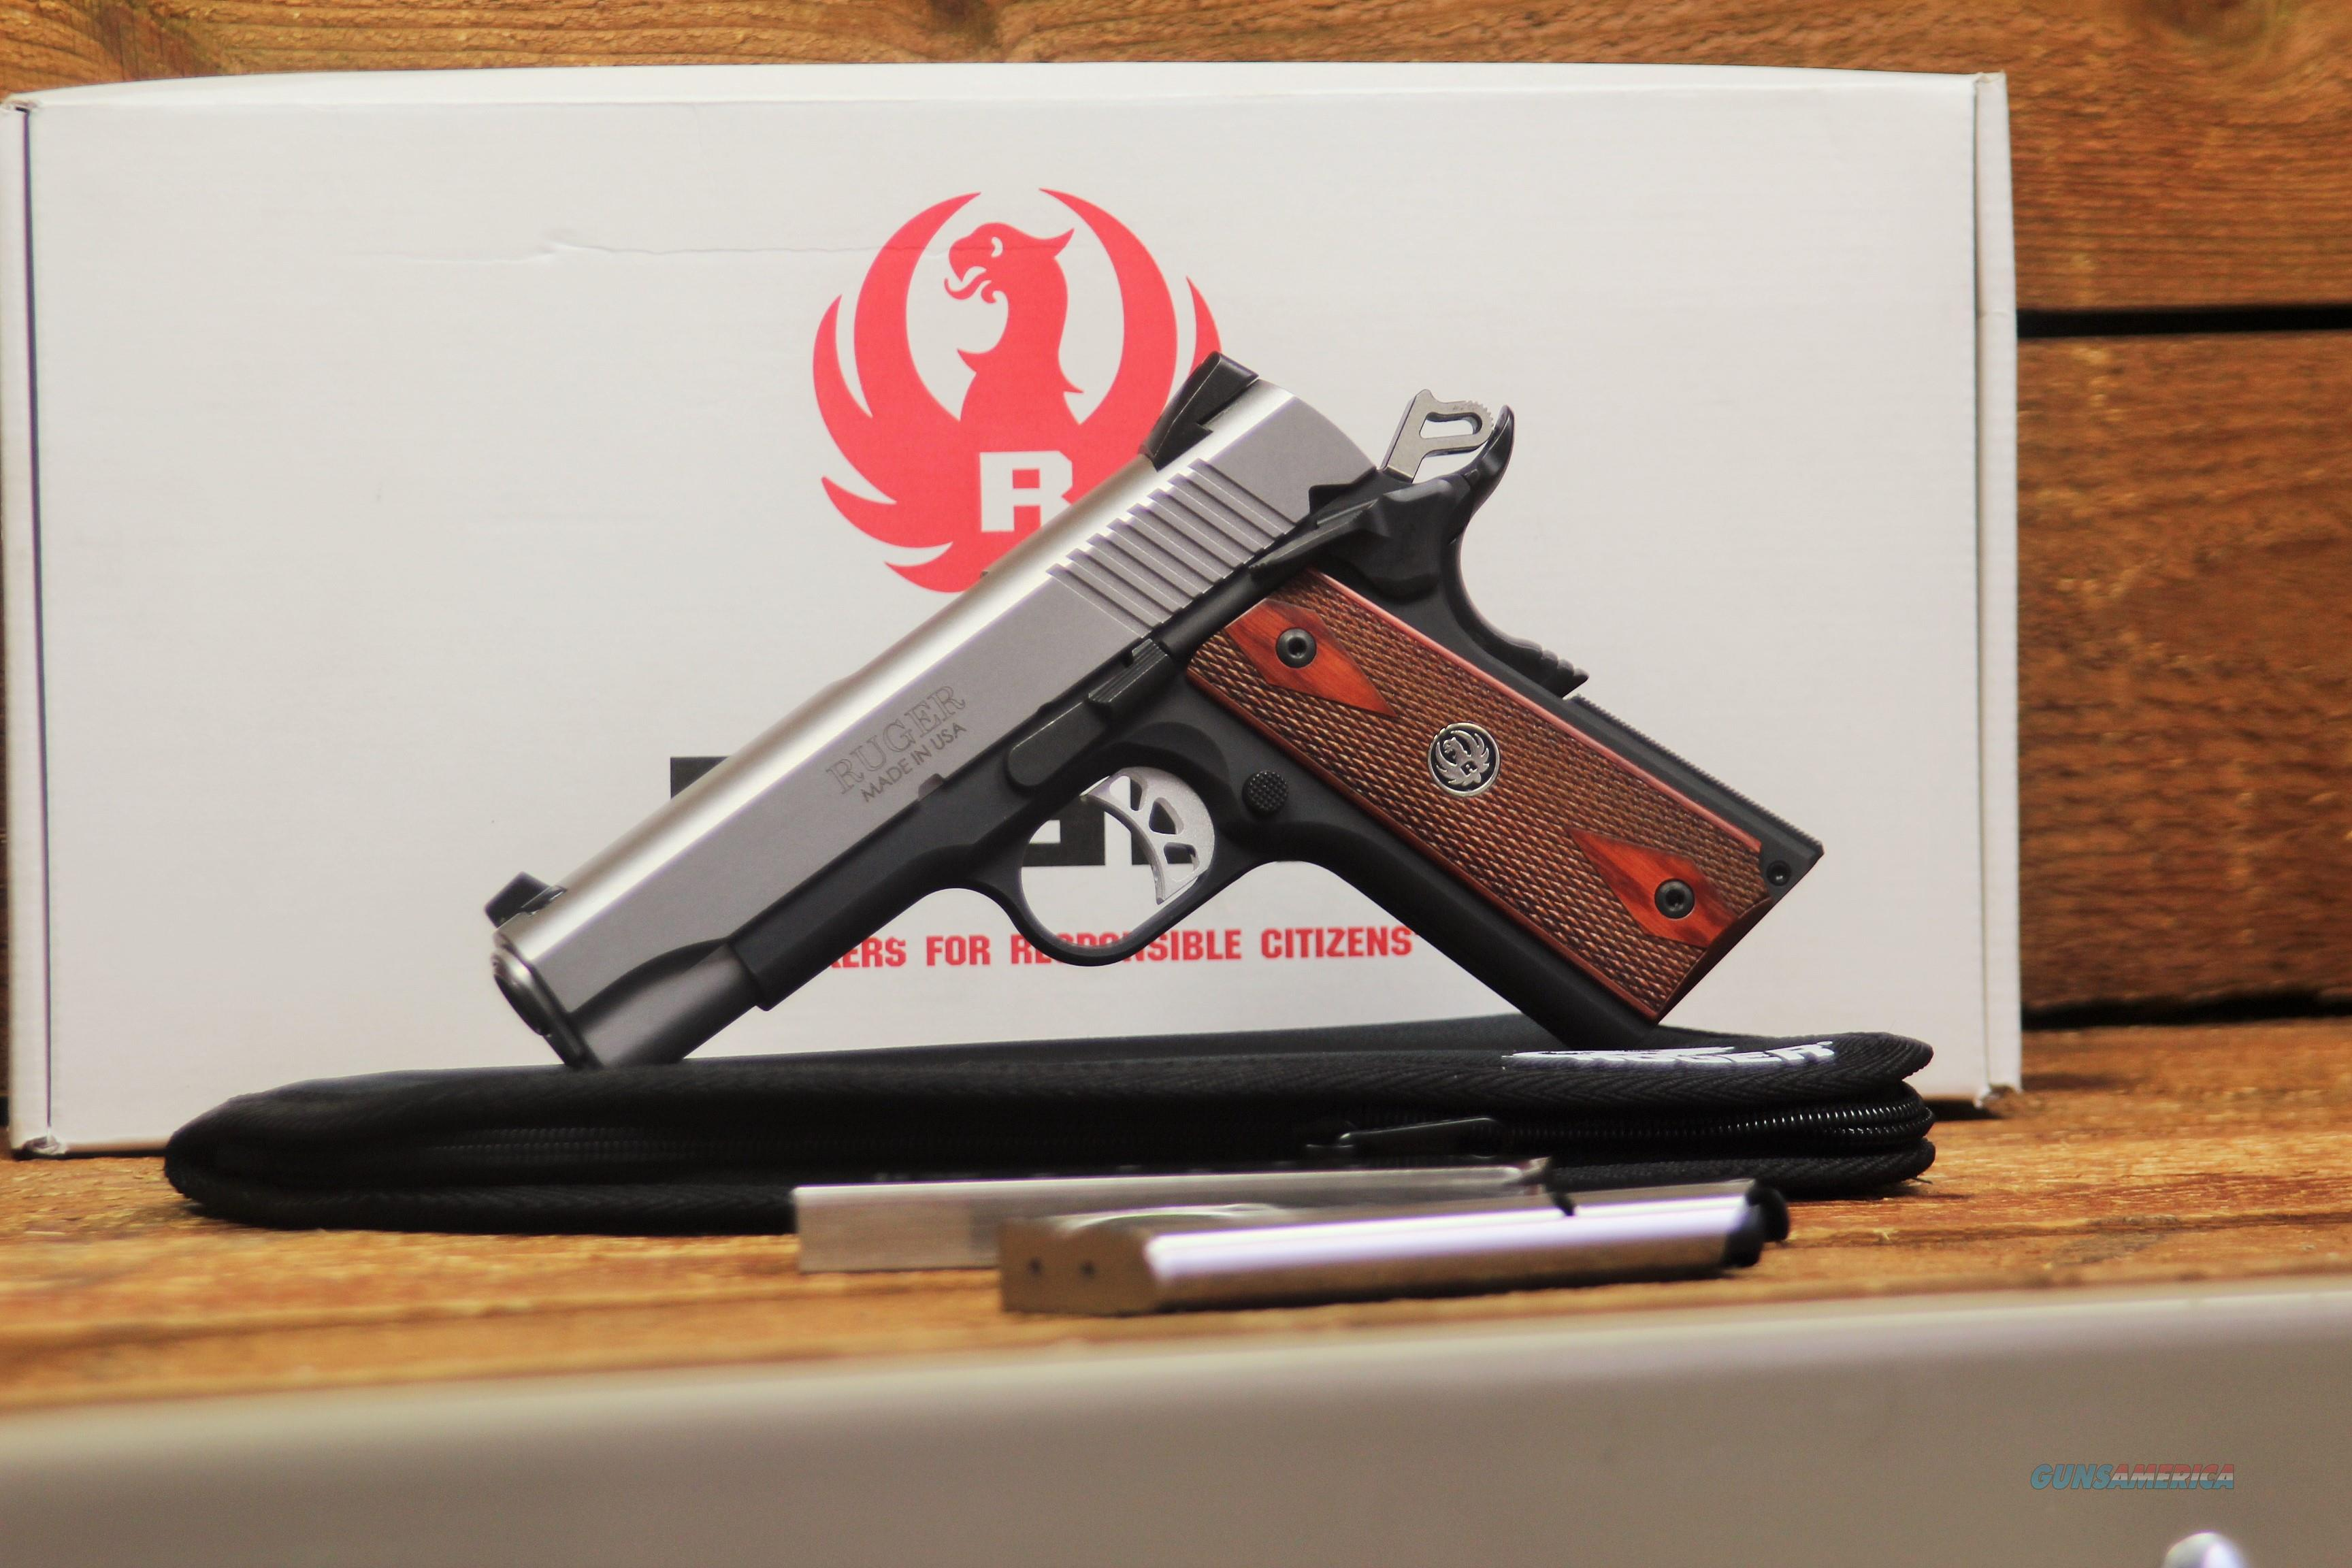 """EASY PAY $73 DOWN LAYAWAY 12 MONTHLY PAYMENTS Ruger SR1911 anodized Commander thin grip Lightweight 1911 4.25"""" Barrel  titanium firing pin  Easley concealable & carried .45 ACP Firepower  7rd Two Tone Stainless steel SS wood 6711  Guns > Rifles > AR-15 Rifles - Small Manufacturers > Complete Rifle"""